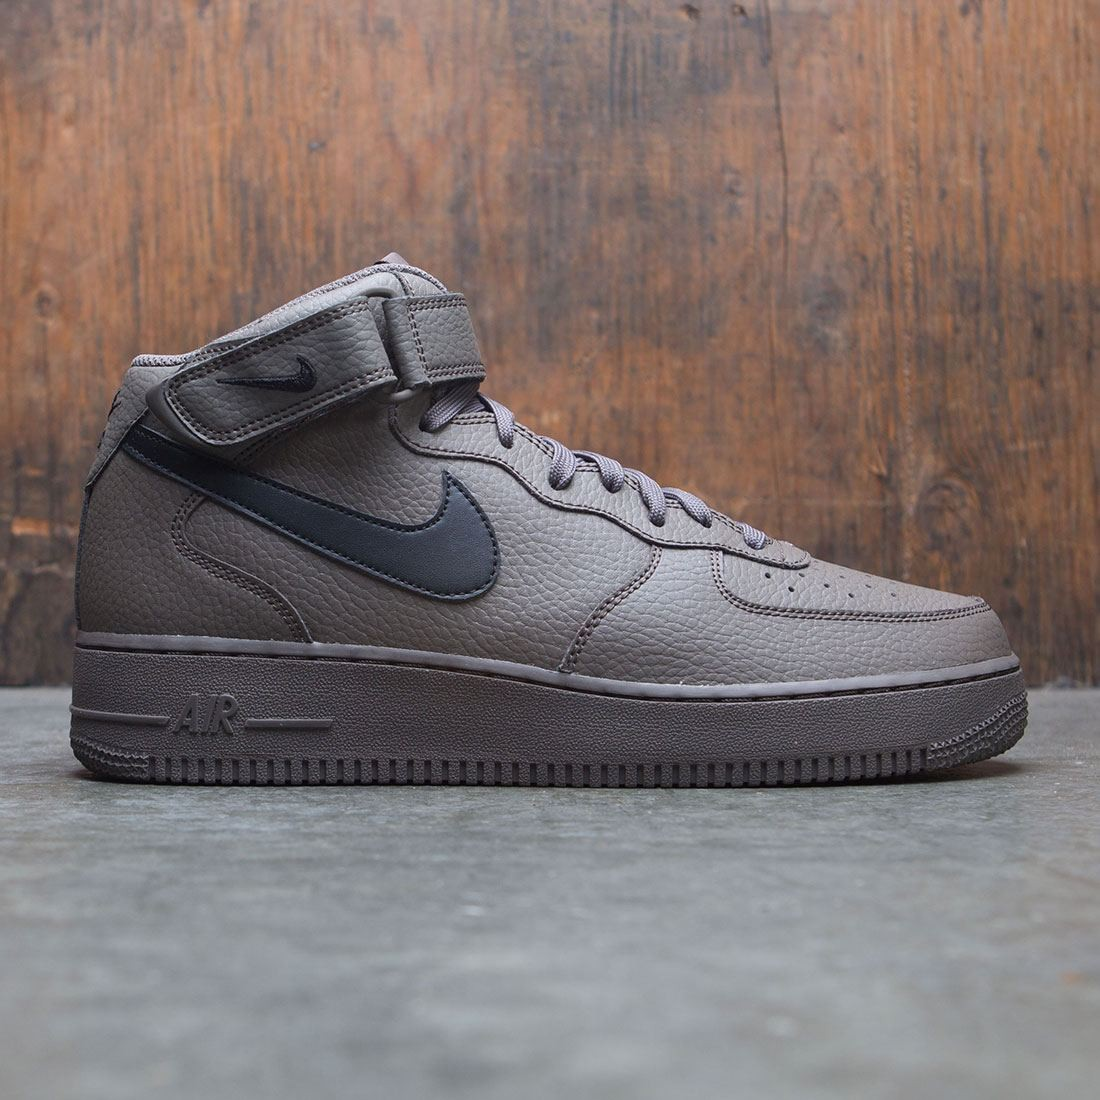 premium selection efa74 7406a nike men air force 1 mid 07 grey black ridgerock